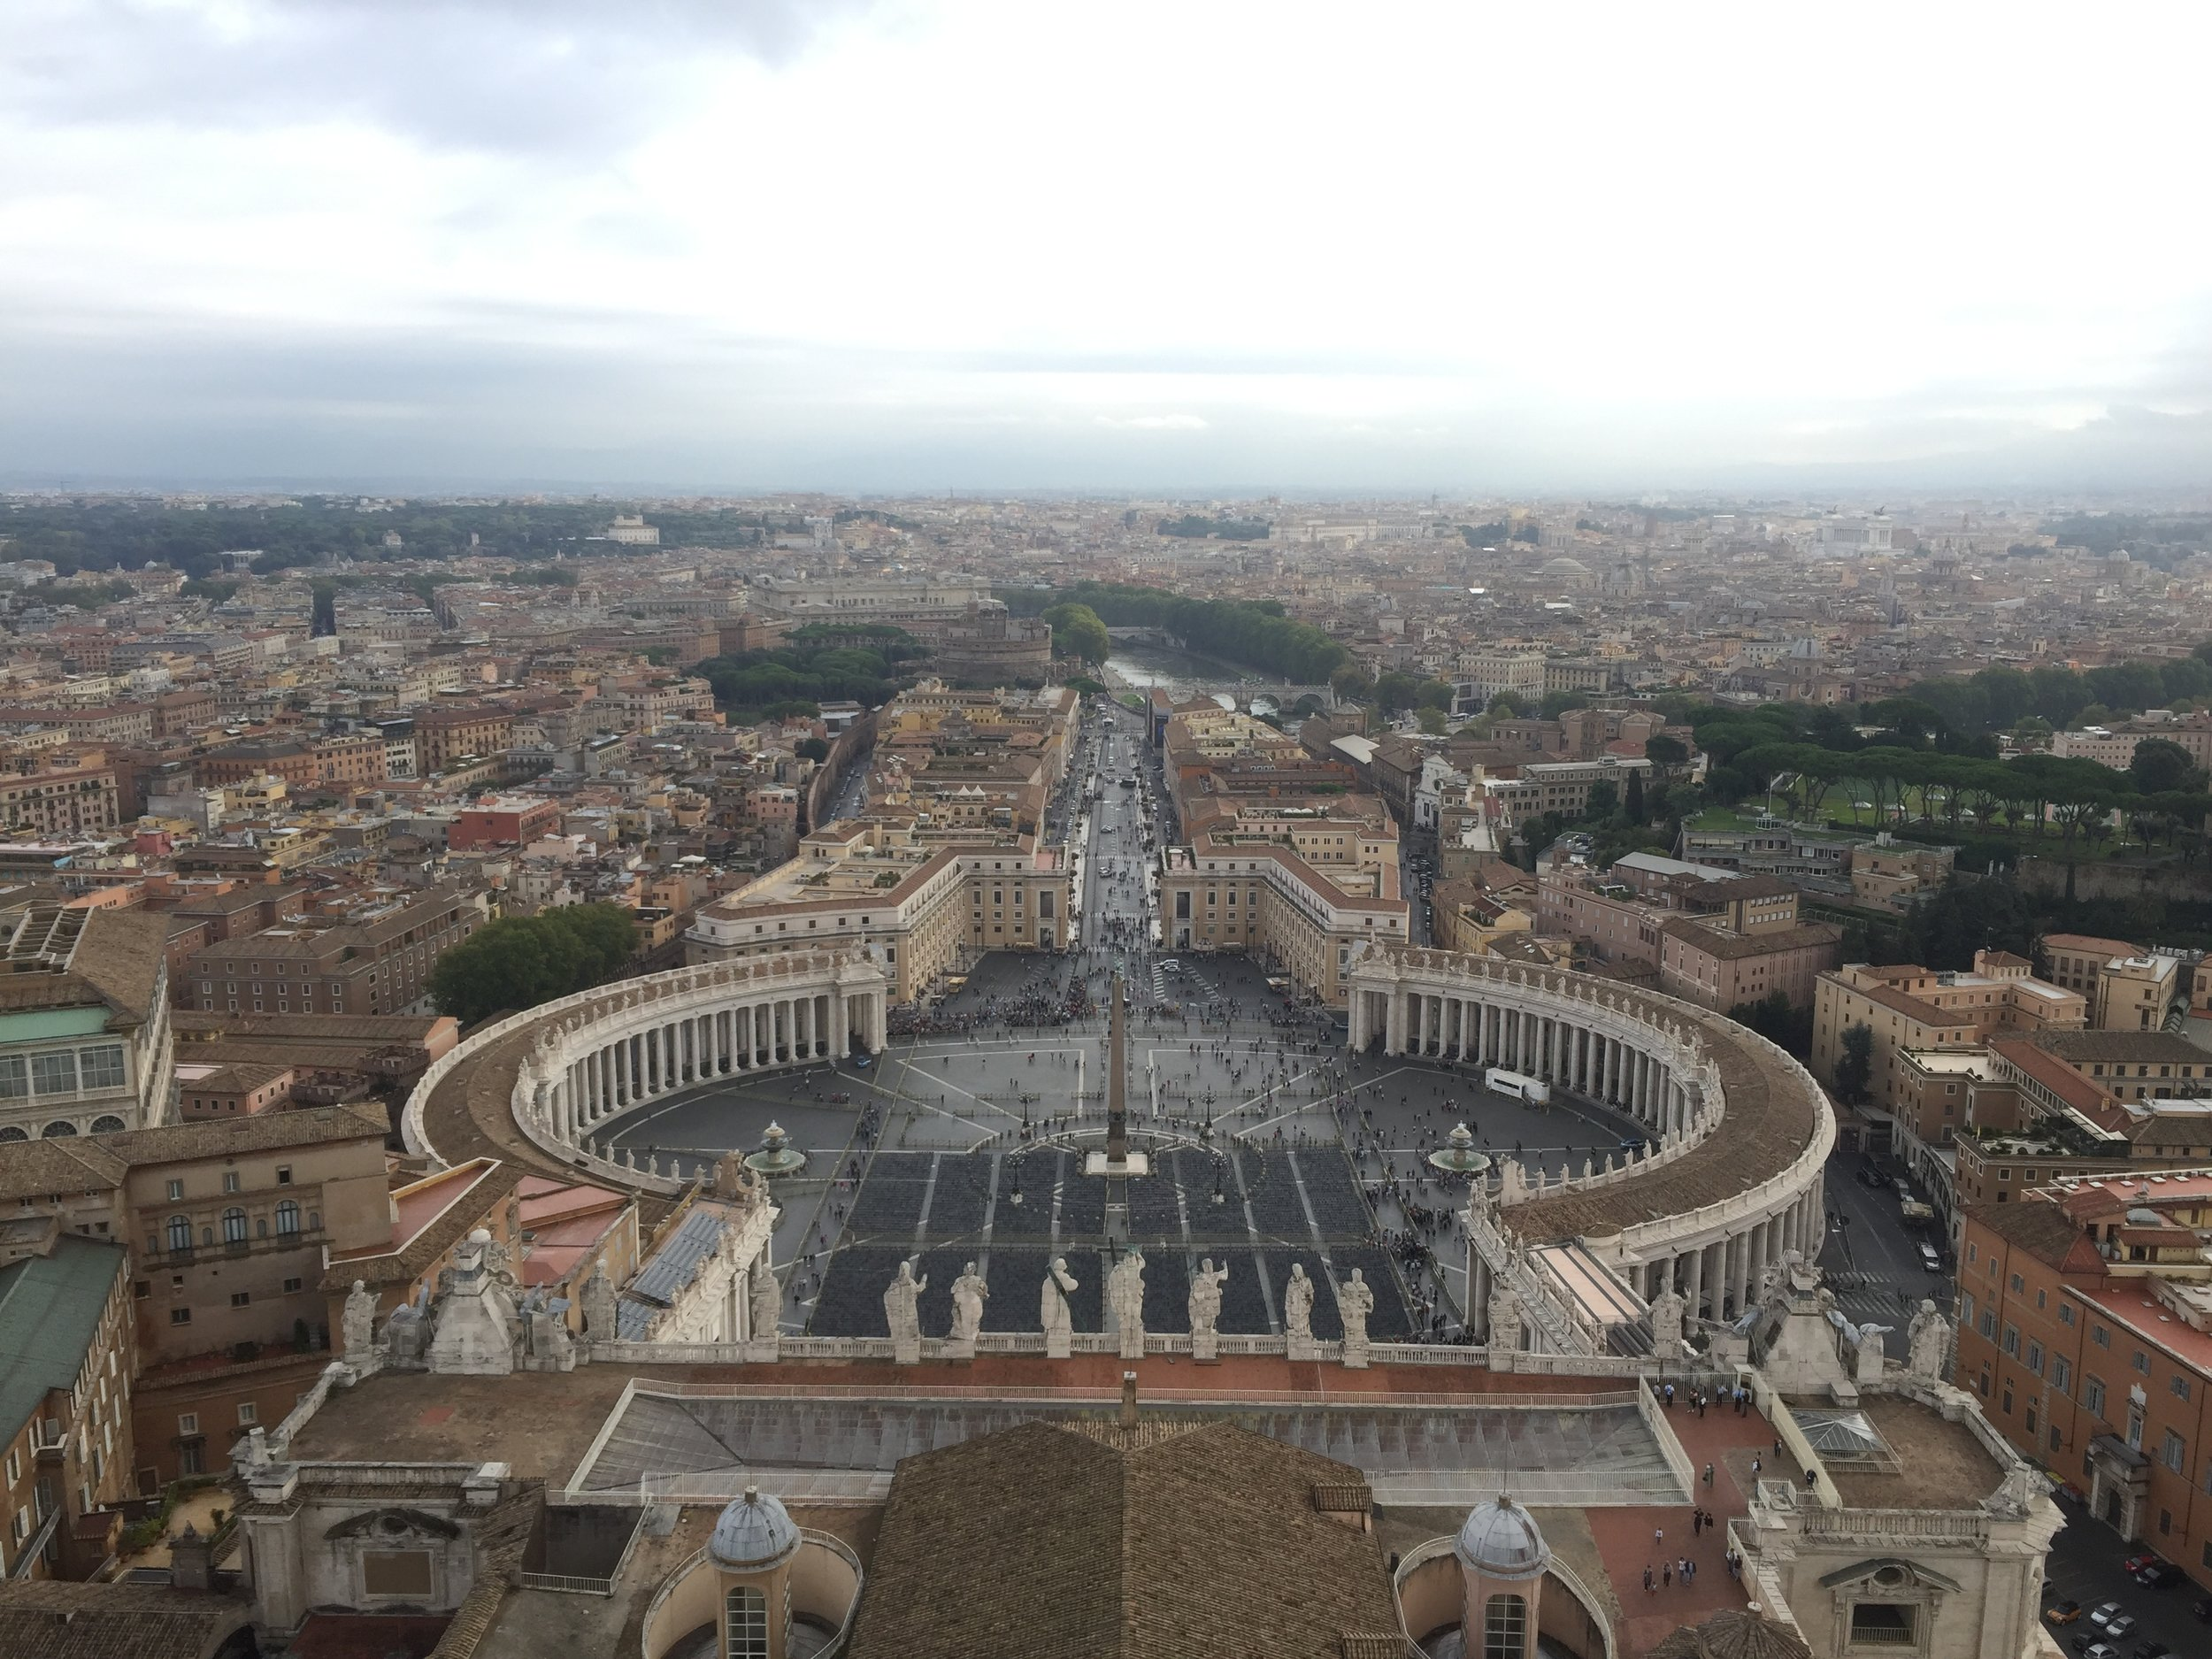 Top of the Vatican    photo by L.D. Van Cleave